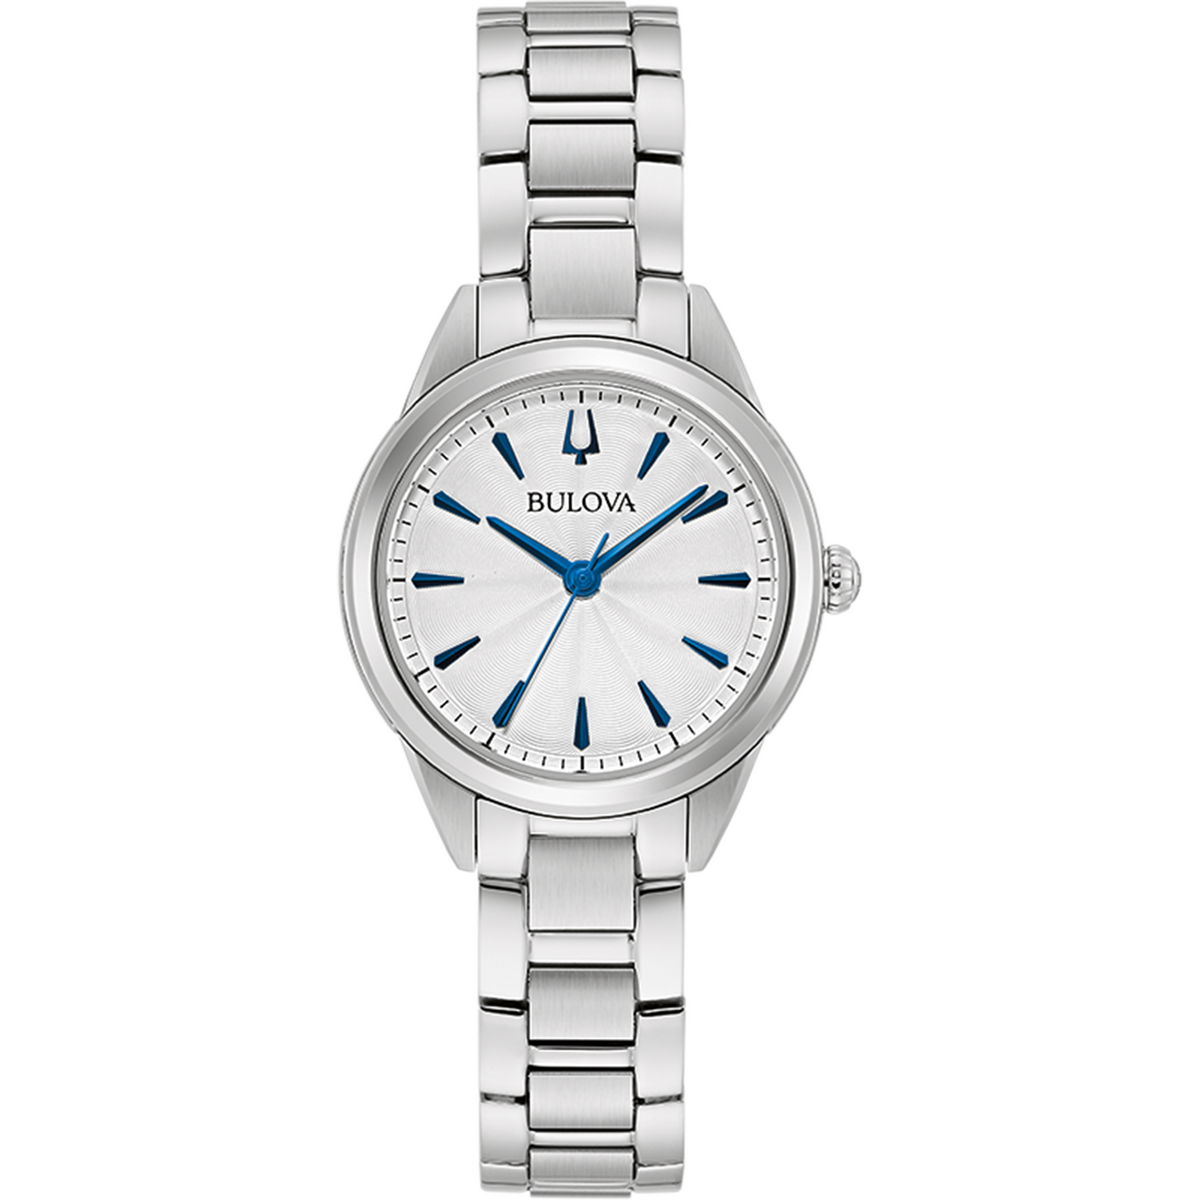 Bulova - Sutton Collection